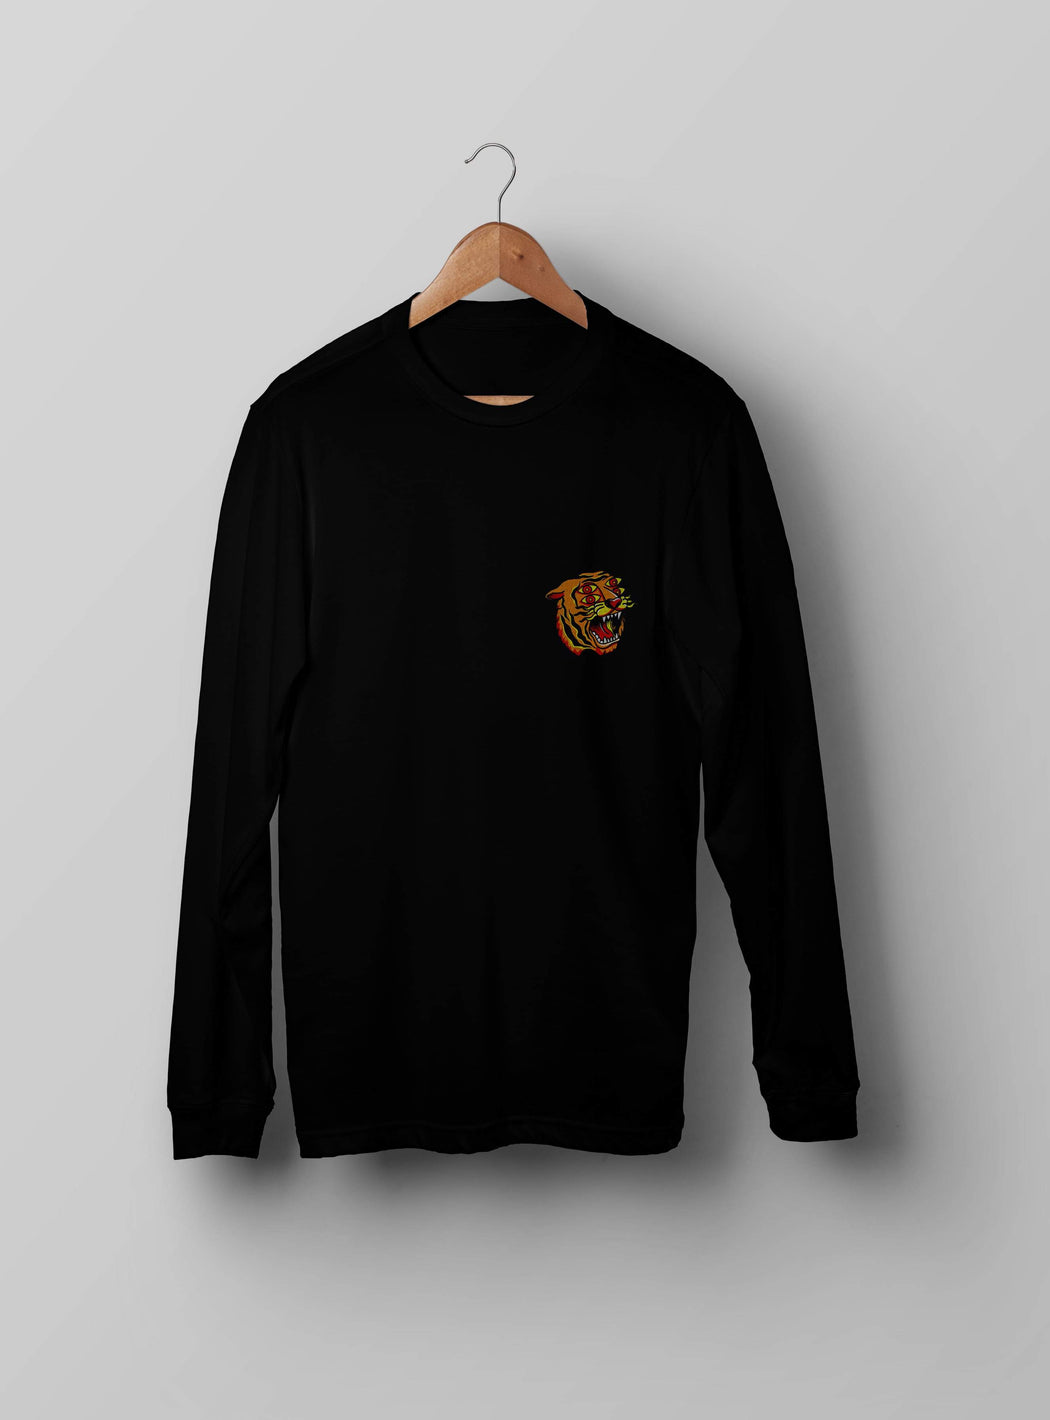 4 Eyes Tiger Black Sweatshirt